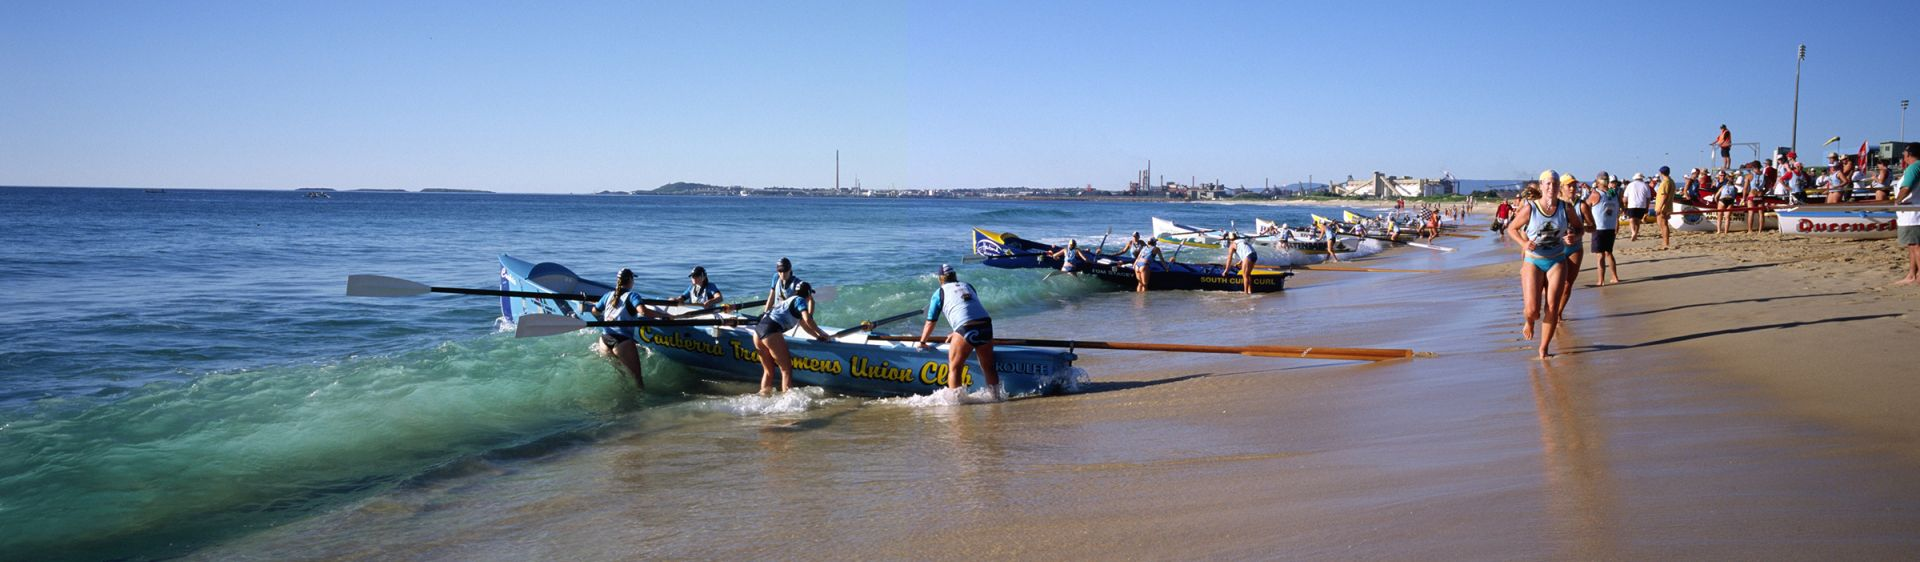 Wollongong Beach Rowing carnival - South Coast